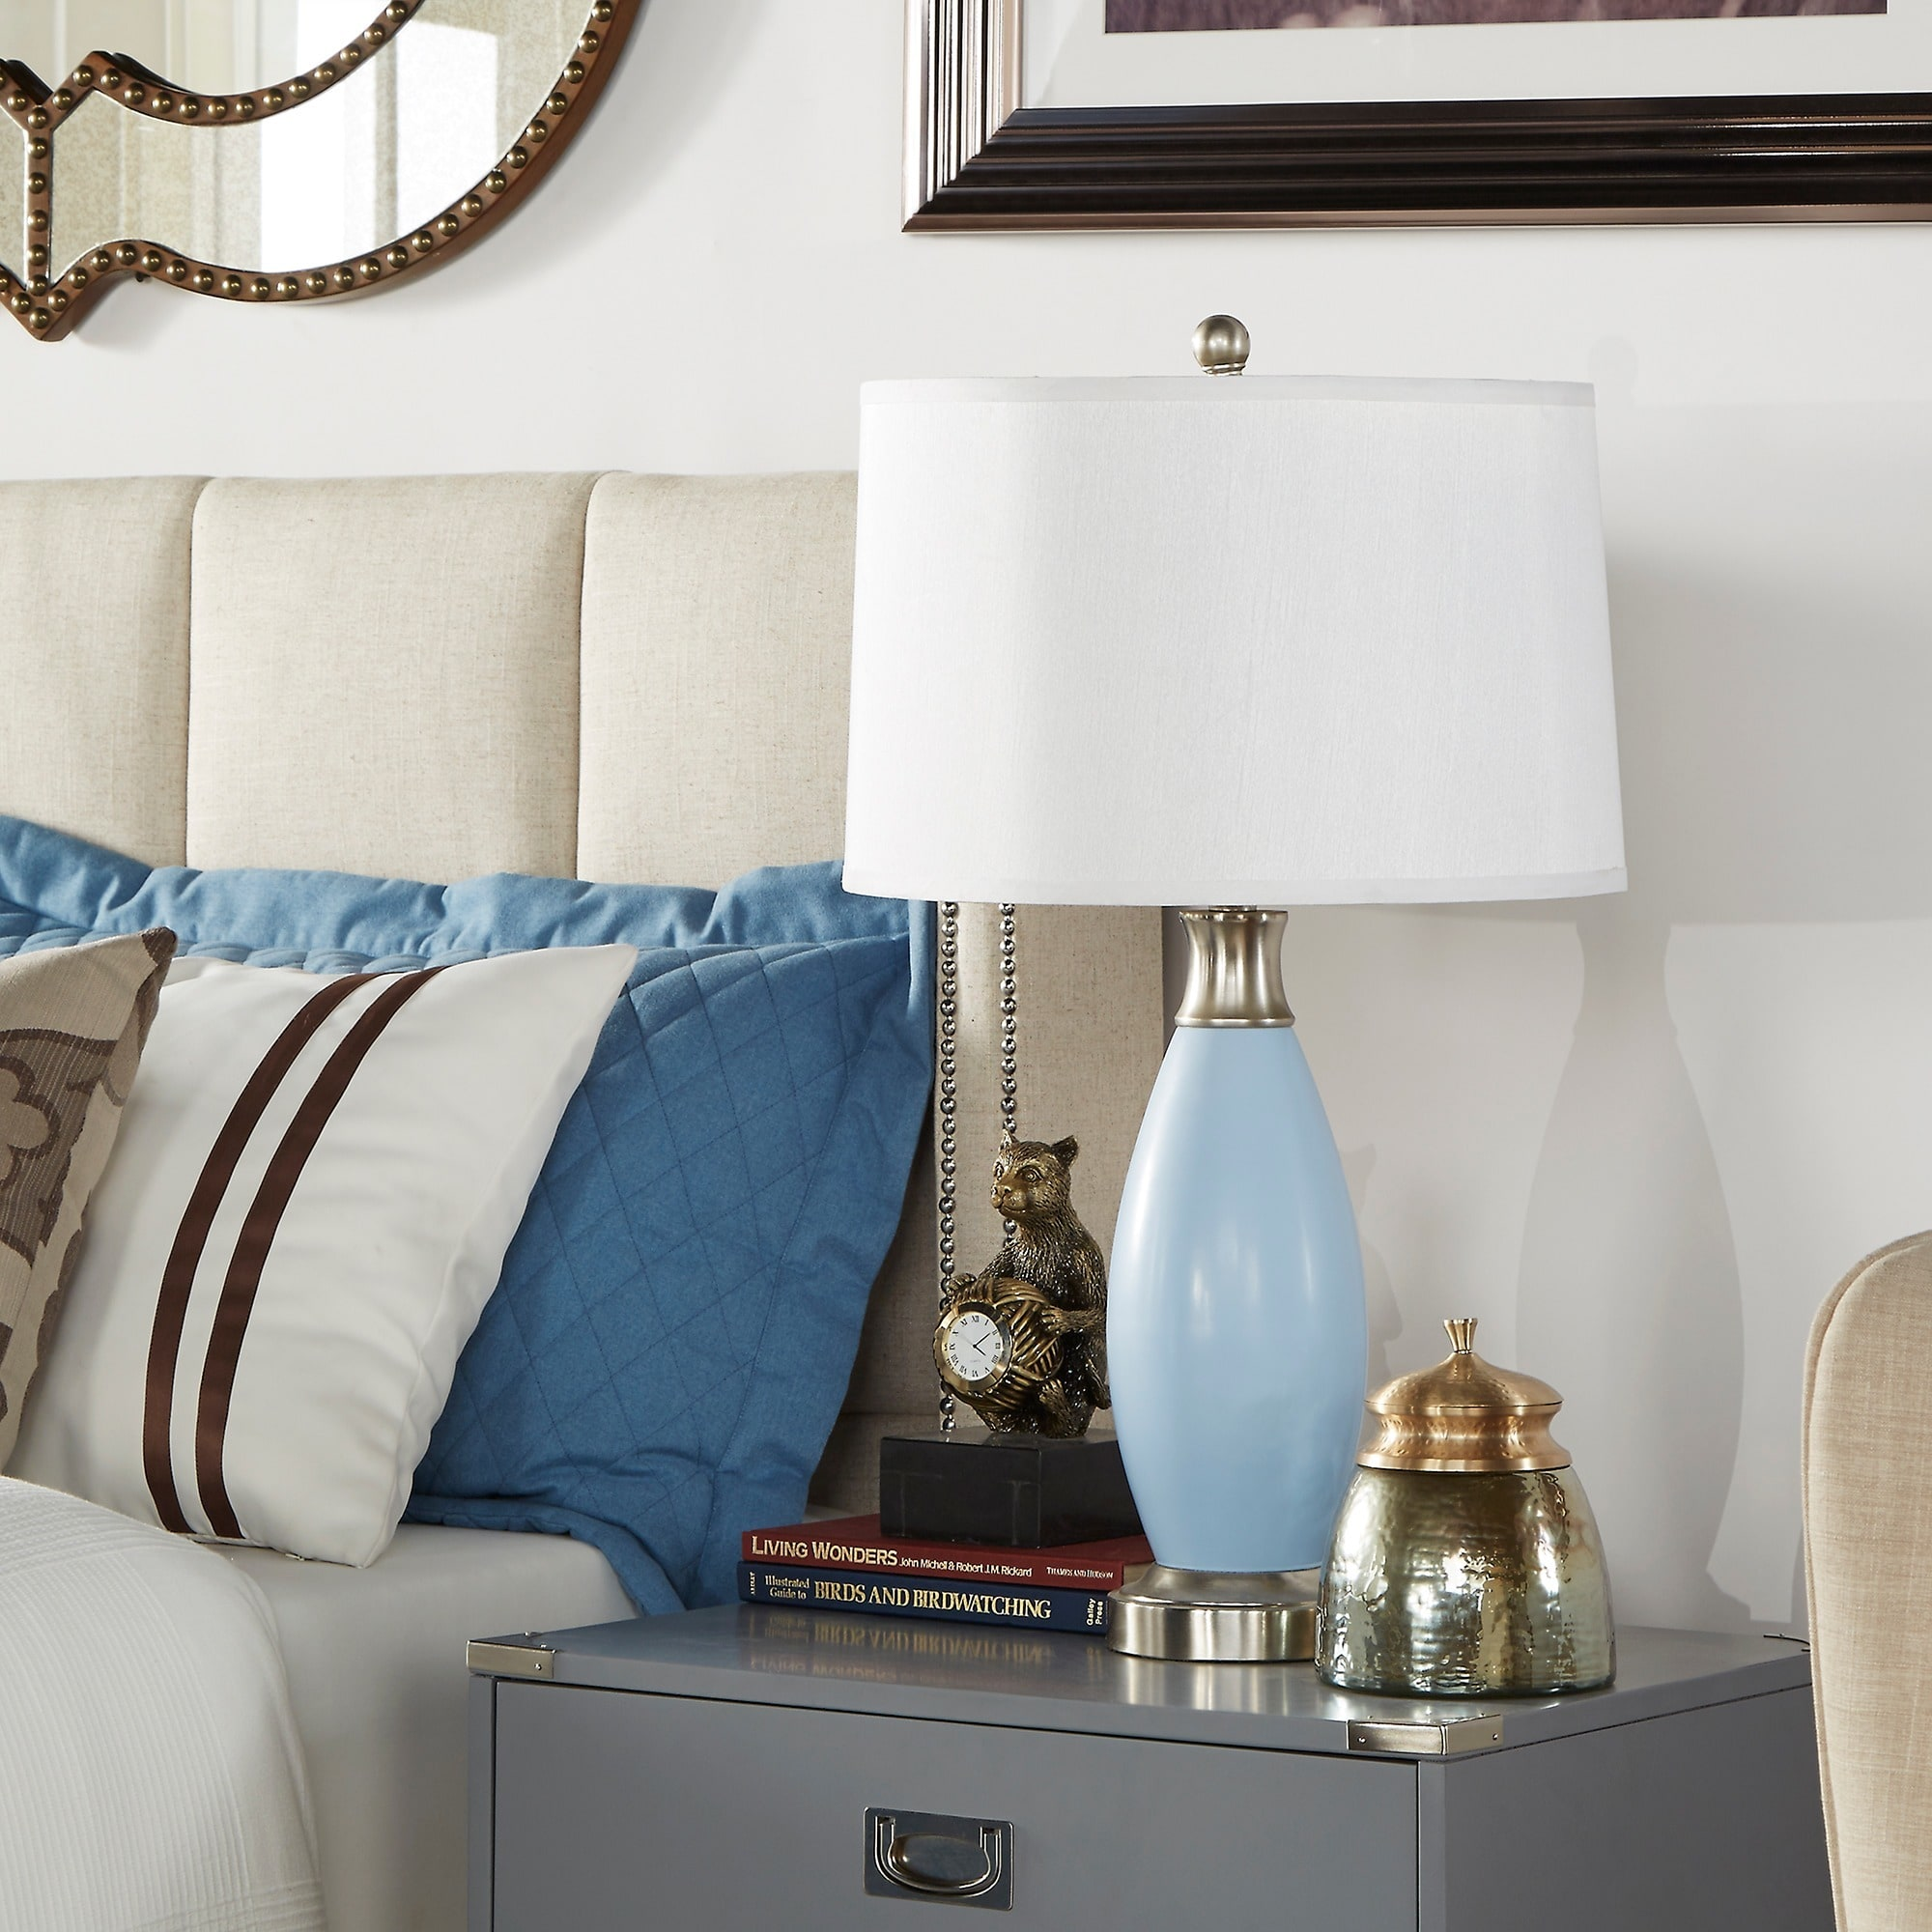 ajax blue metal light accent table lamp inspire classic free shipping today west elm floor cushion dark bedside tables distressed modern clock outside patio furniture holiday